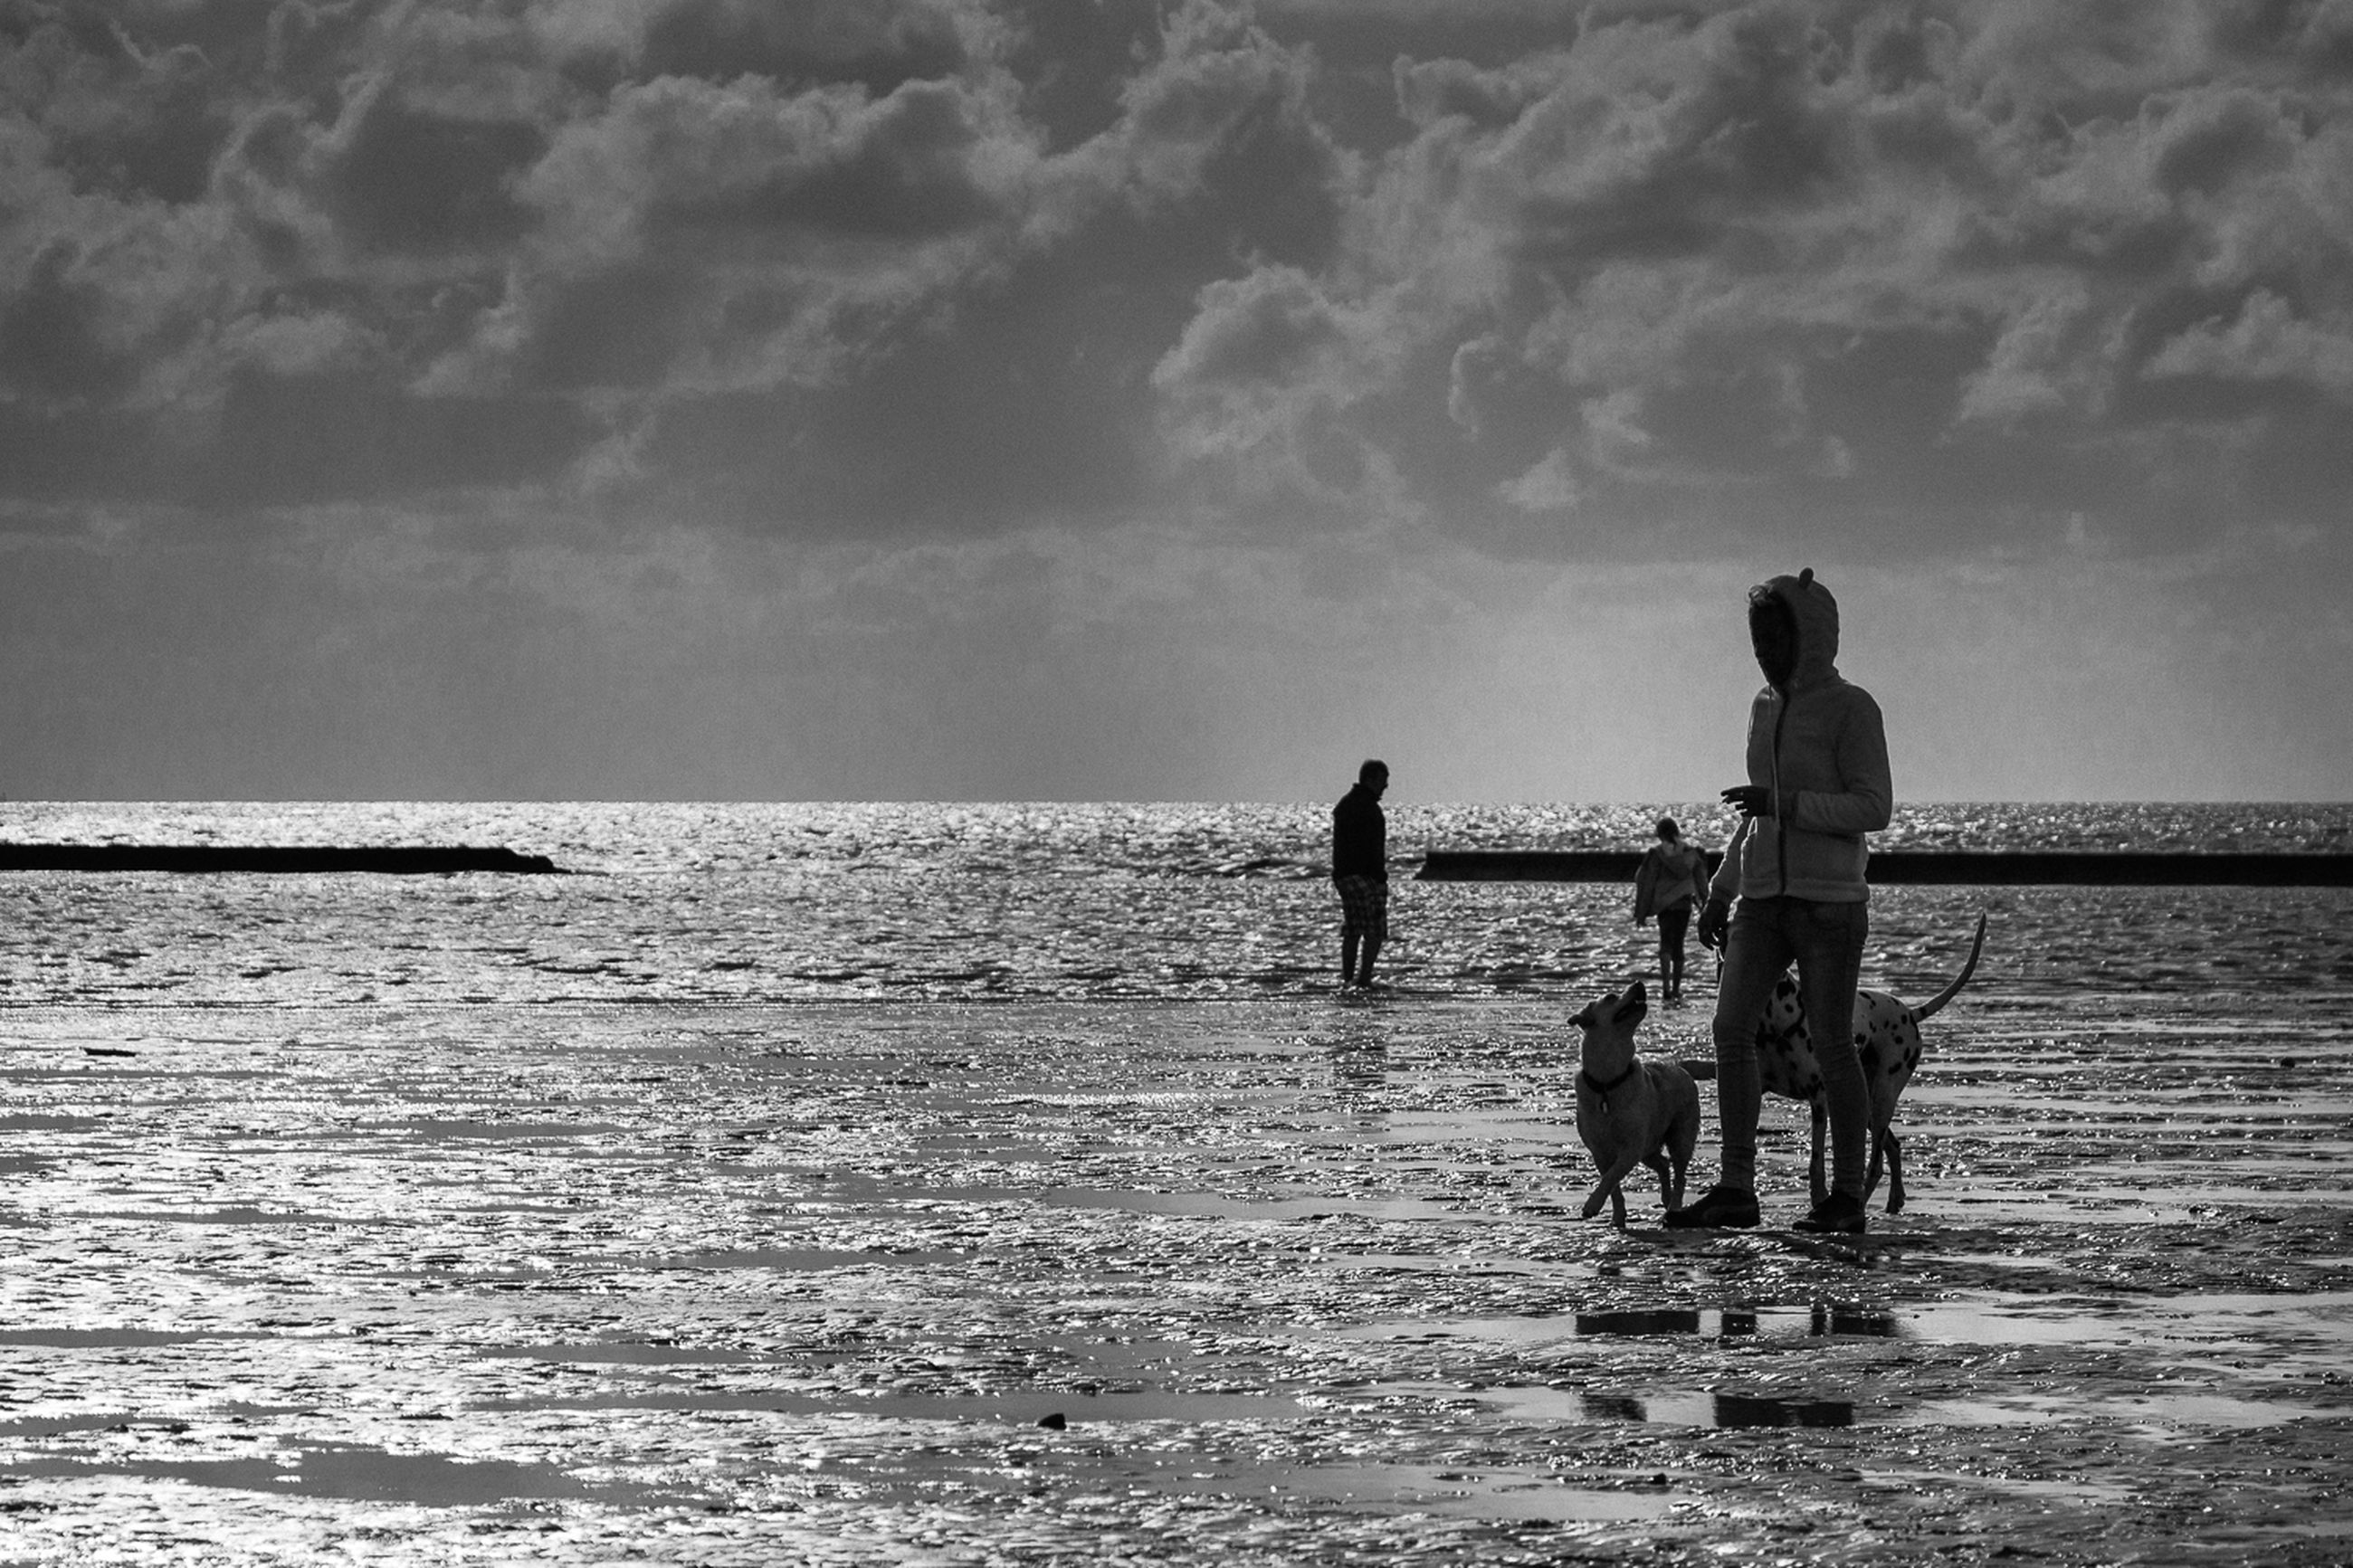 sea, togetherness, two people, water, horizon over water, leisure activity, real people, friendship, nature, sky, sitting, lifestyles, men, love, full length, bonding, dog, day, outdoors, standing, vacations, women, beach, scenics, beauty in nature, pets, domestic animals, mammal, people